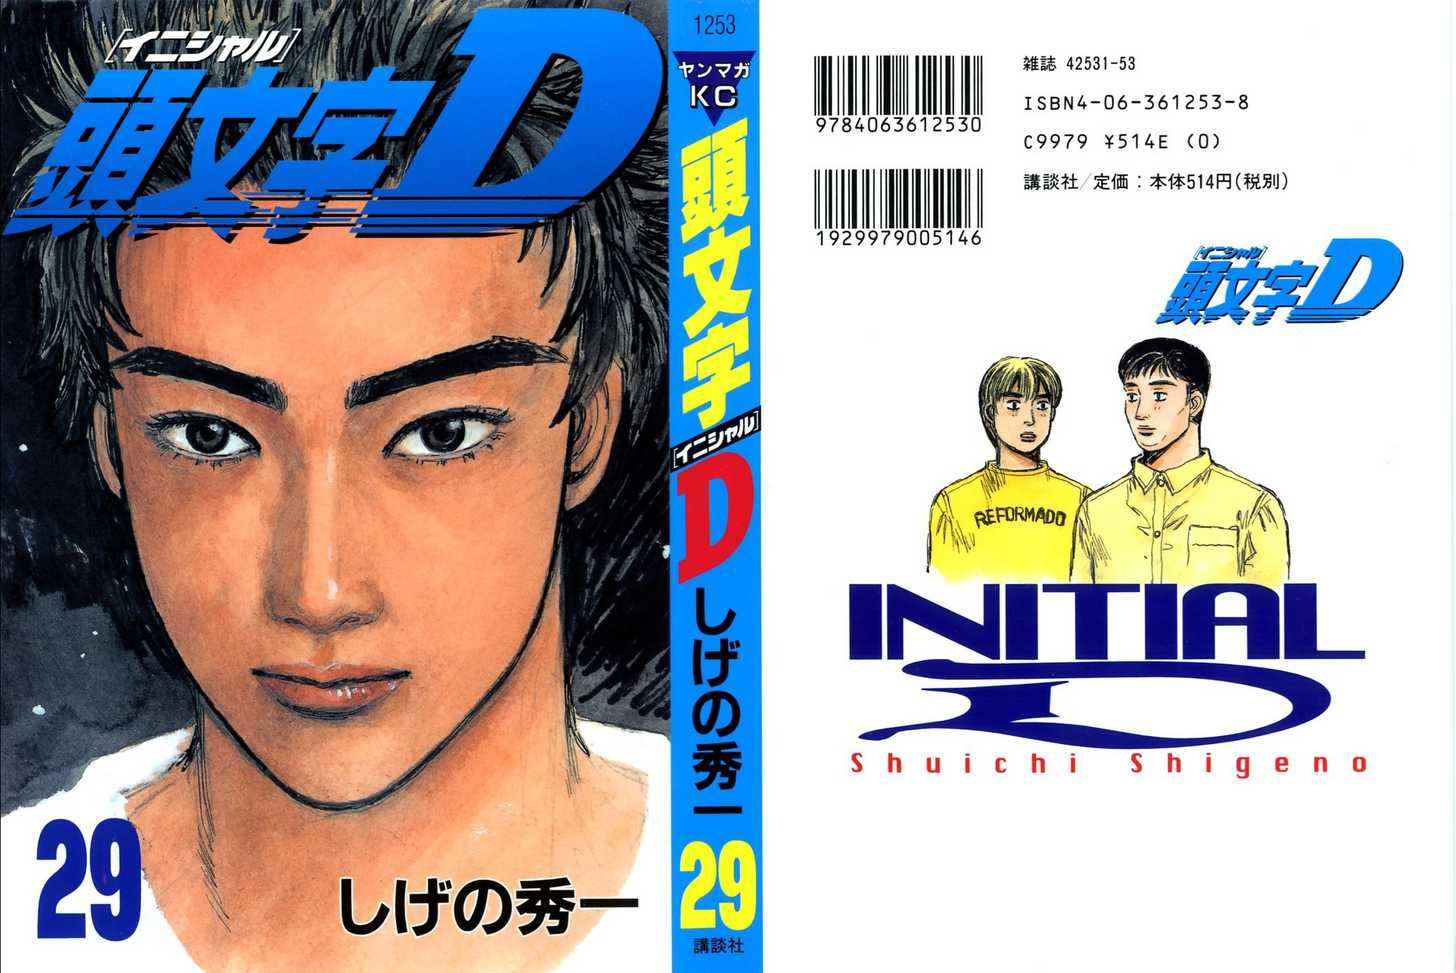 http://im.nineanime.com/comics/pic9/61/2493/61055/InitialD3740760.jpg Page 1